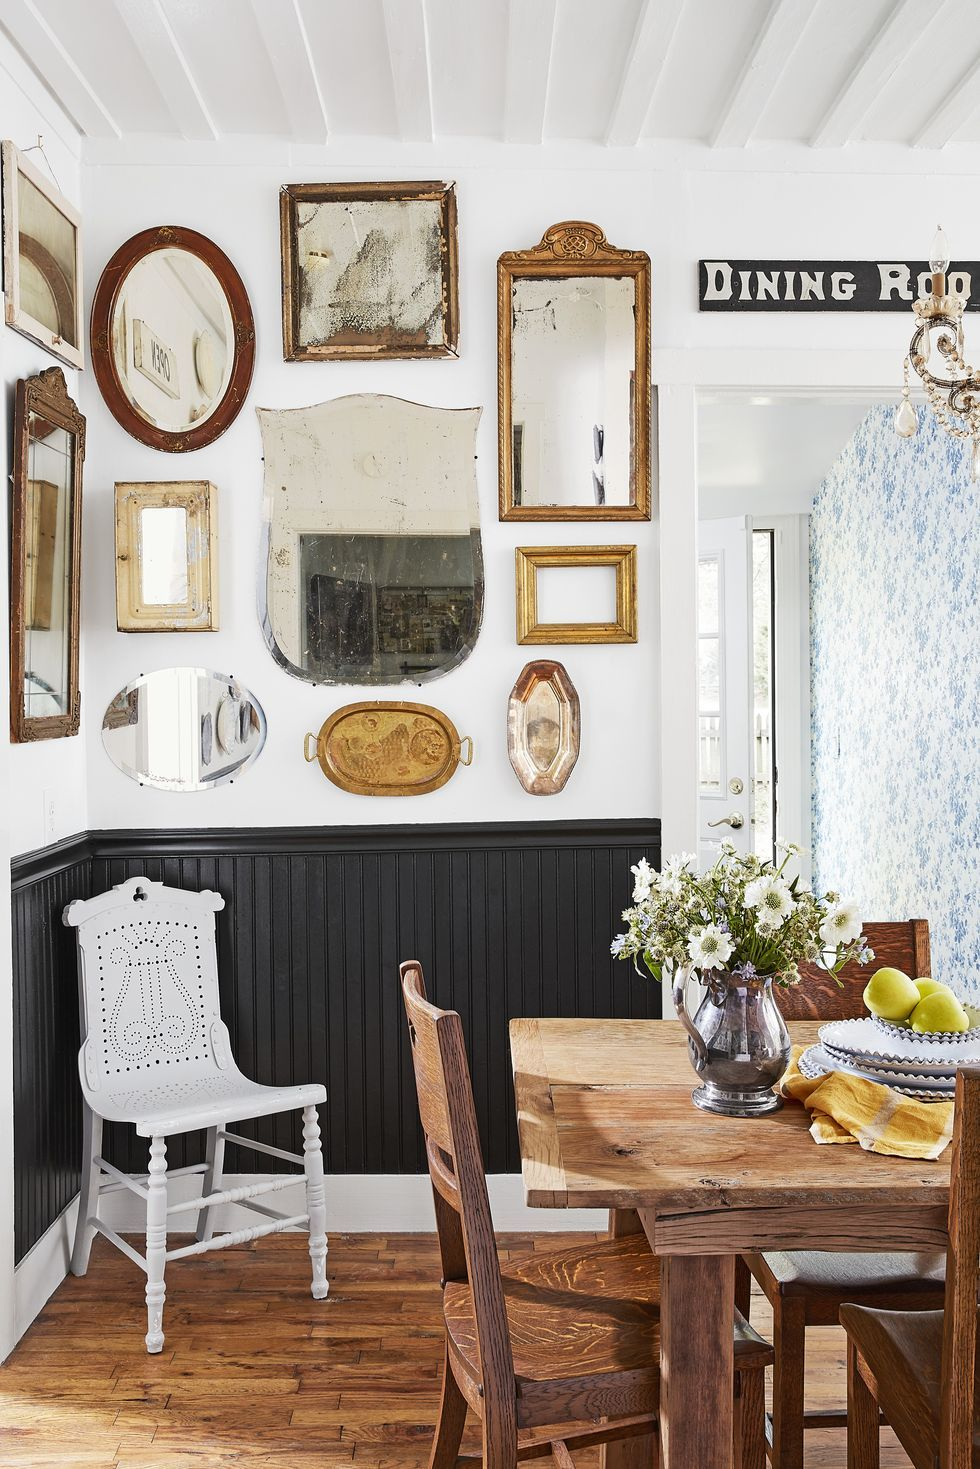 Image of: 15 Small Dining Room Ideas How To Decorate Your Small Dining Room